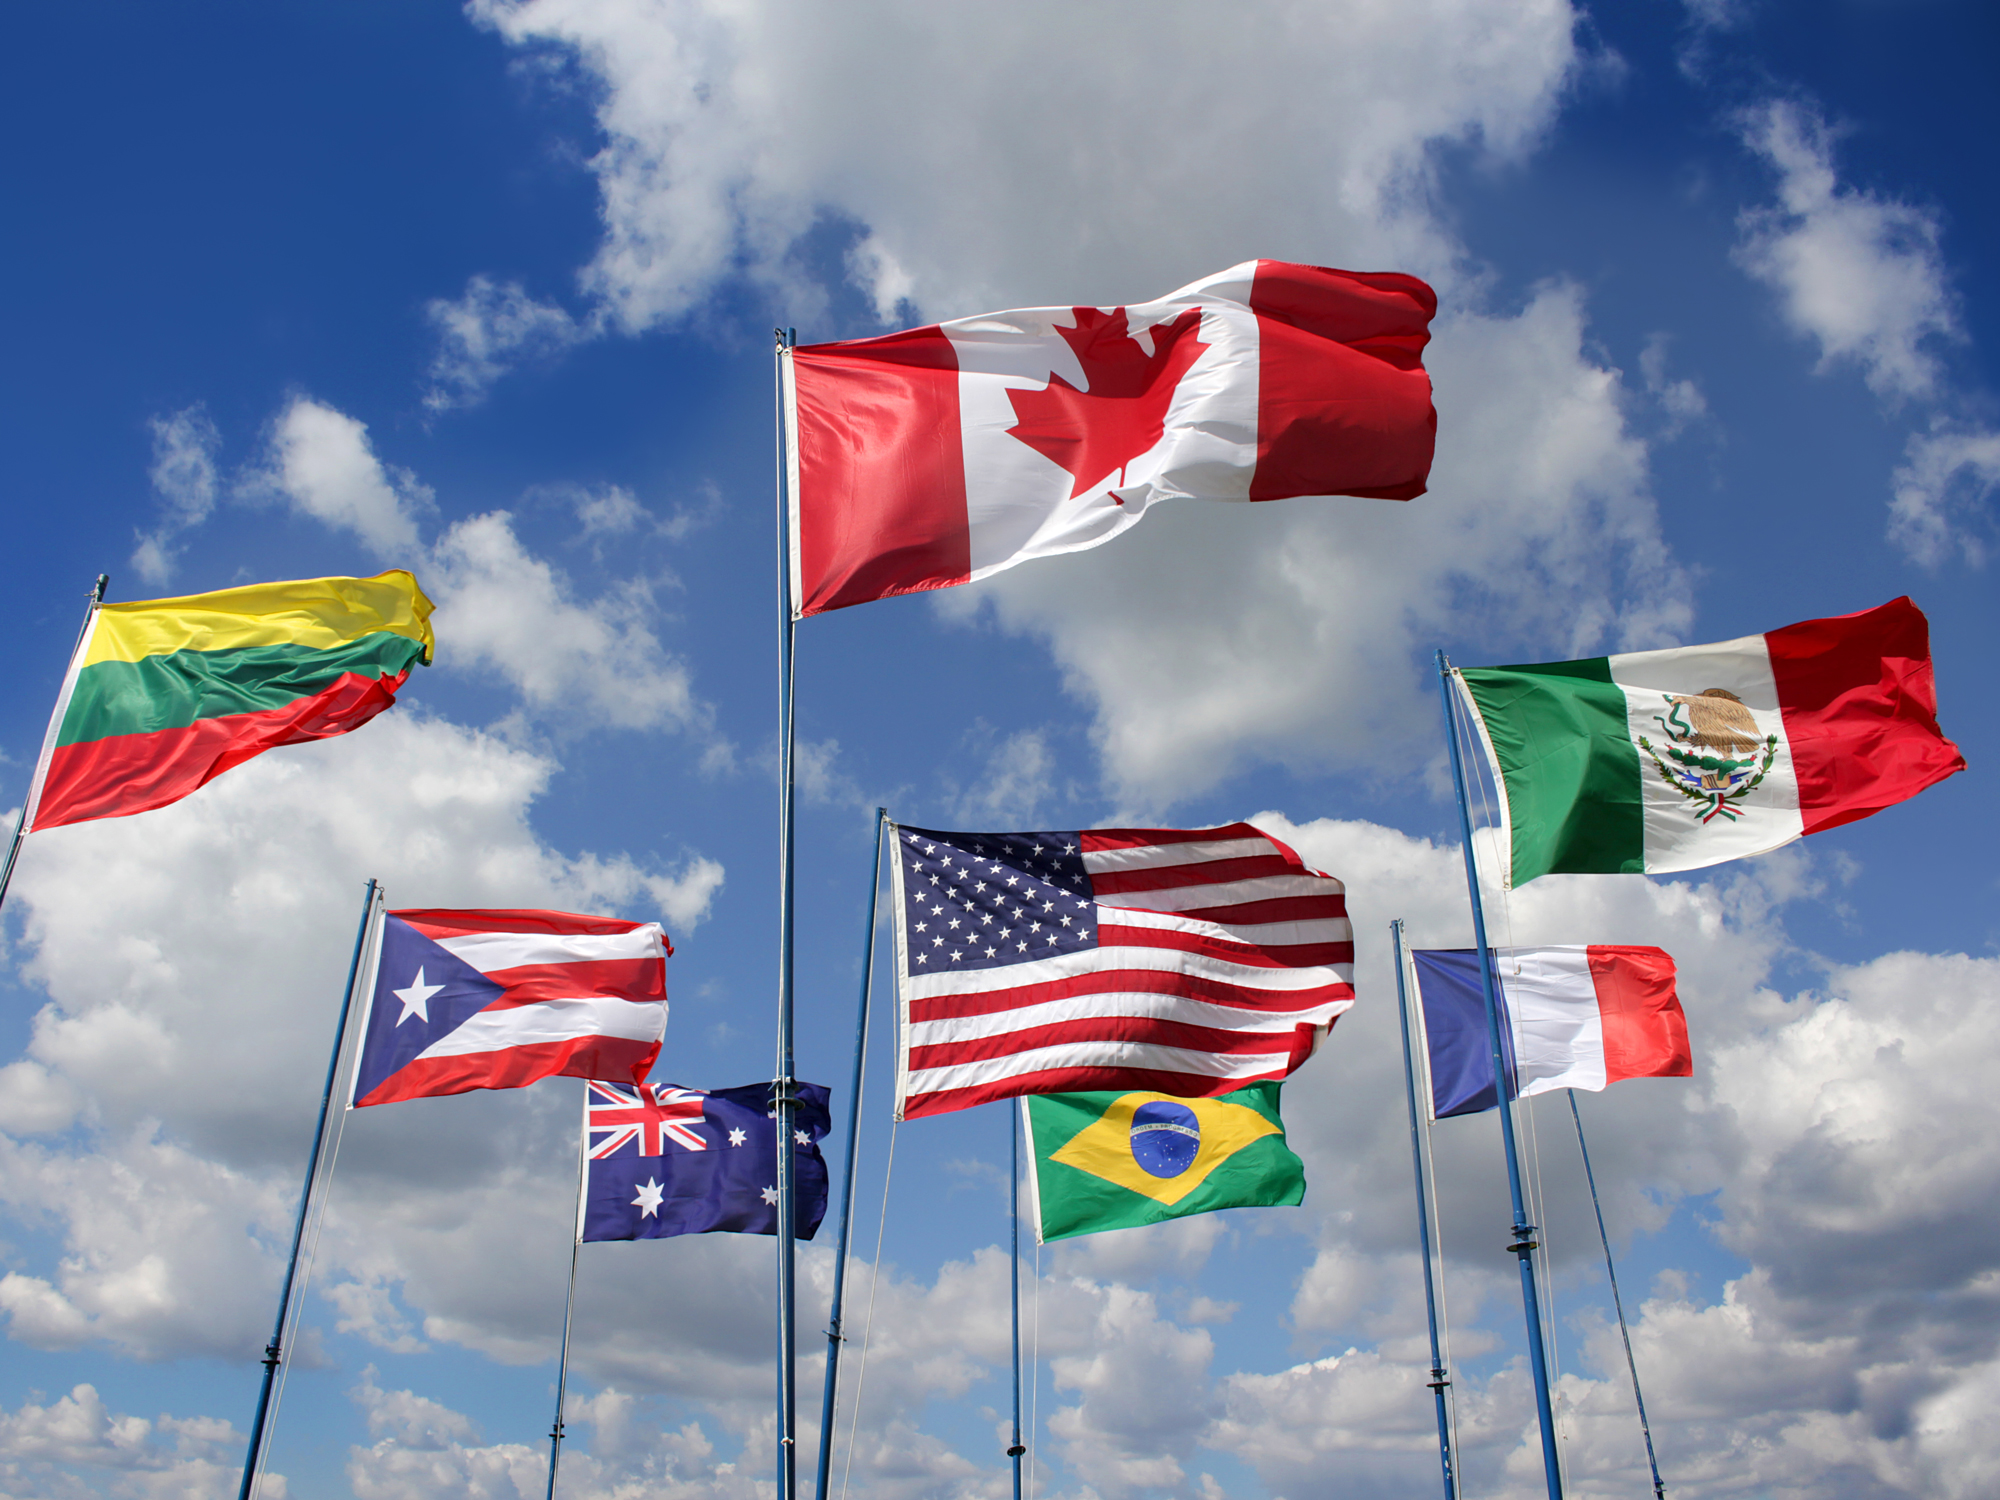 Country flags, including those of the U.S., Mexico and Canada